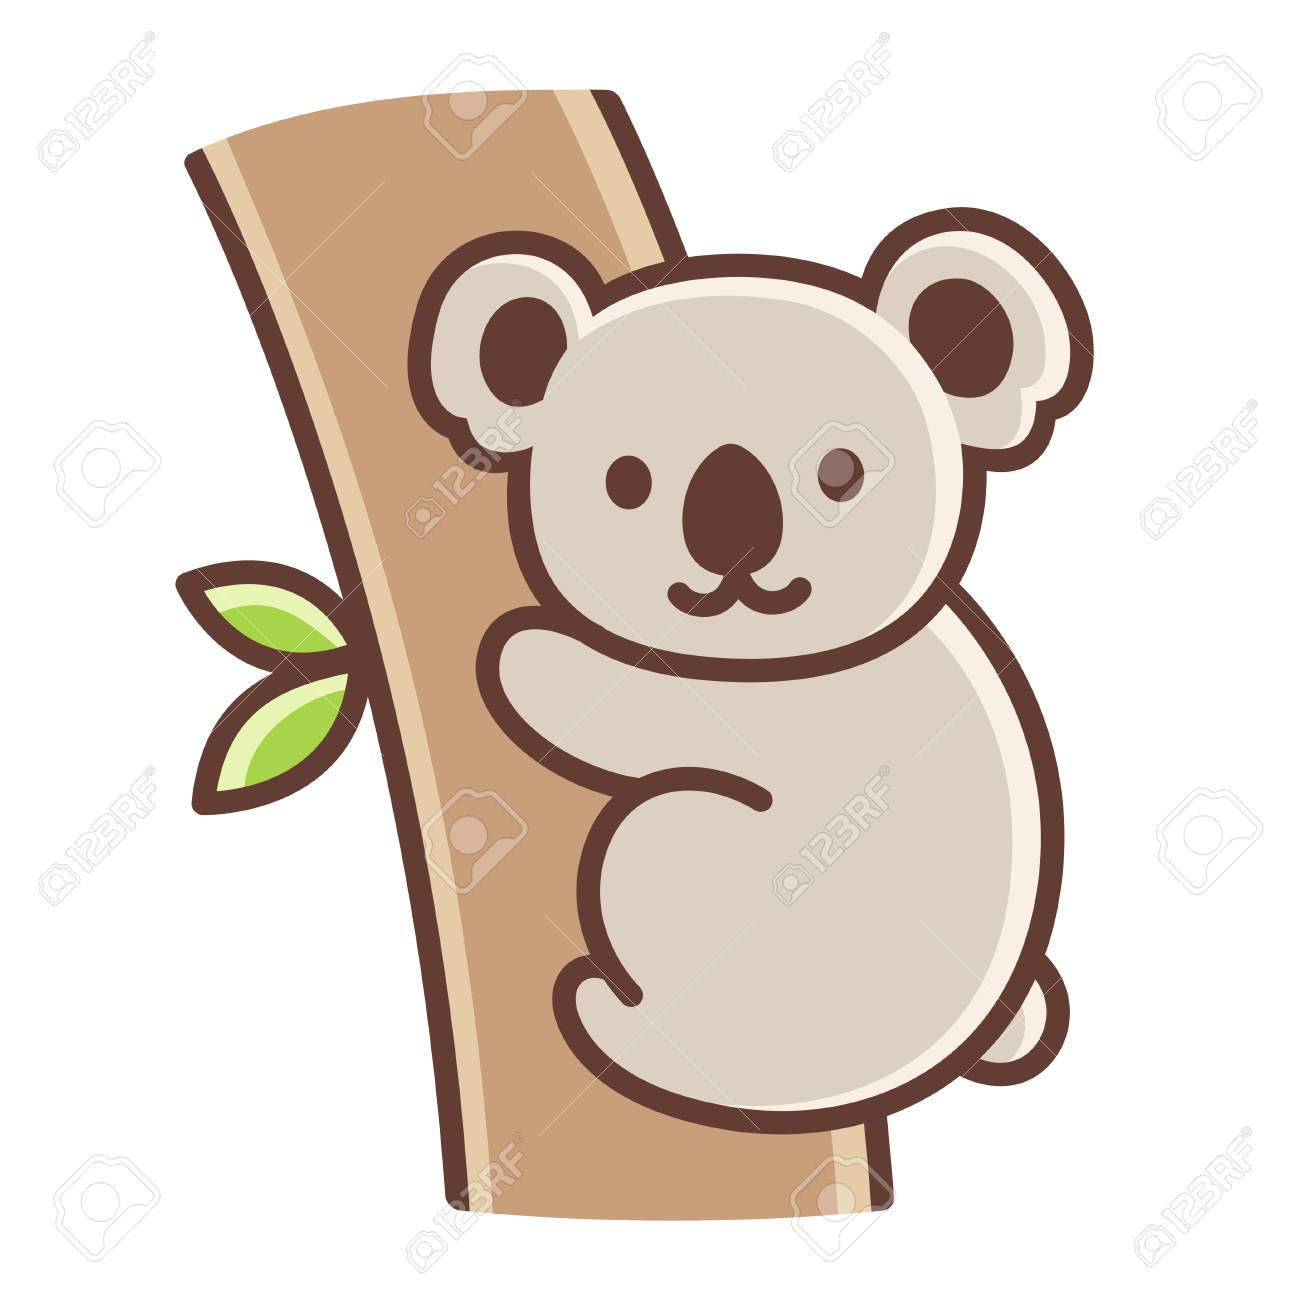 cute cartoon koala on tree branch simple vector illustration rh 123rf com simple vector drawing program simple vector image editor